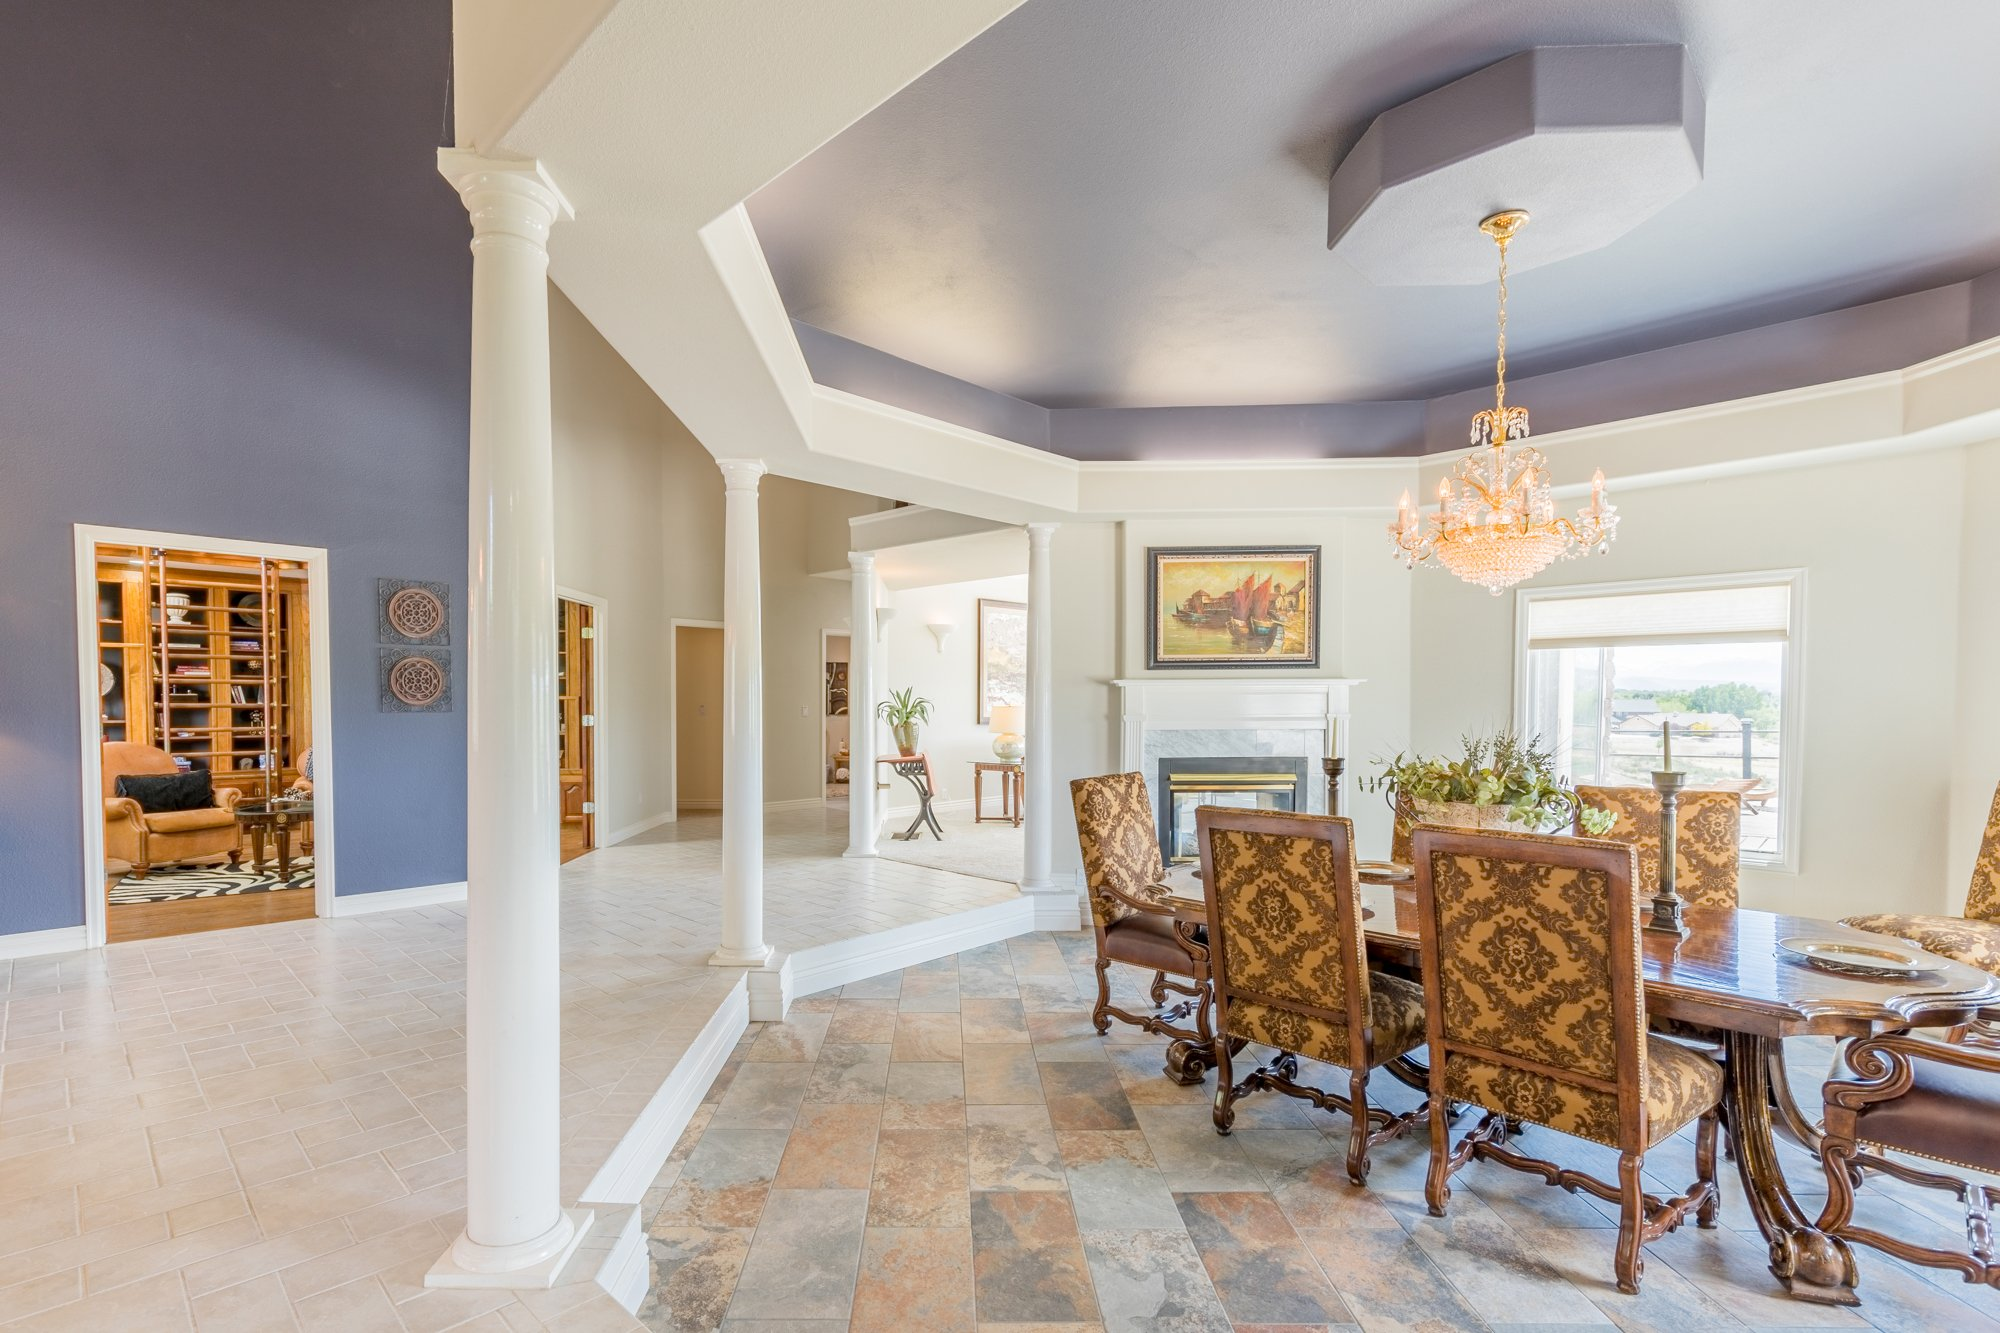 Dining Room with Trey Ceiling - 16955 Wildwood Dr. Montrose, CO 81403 - Atha Team Luxury Real Estate